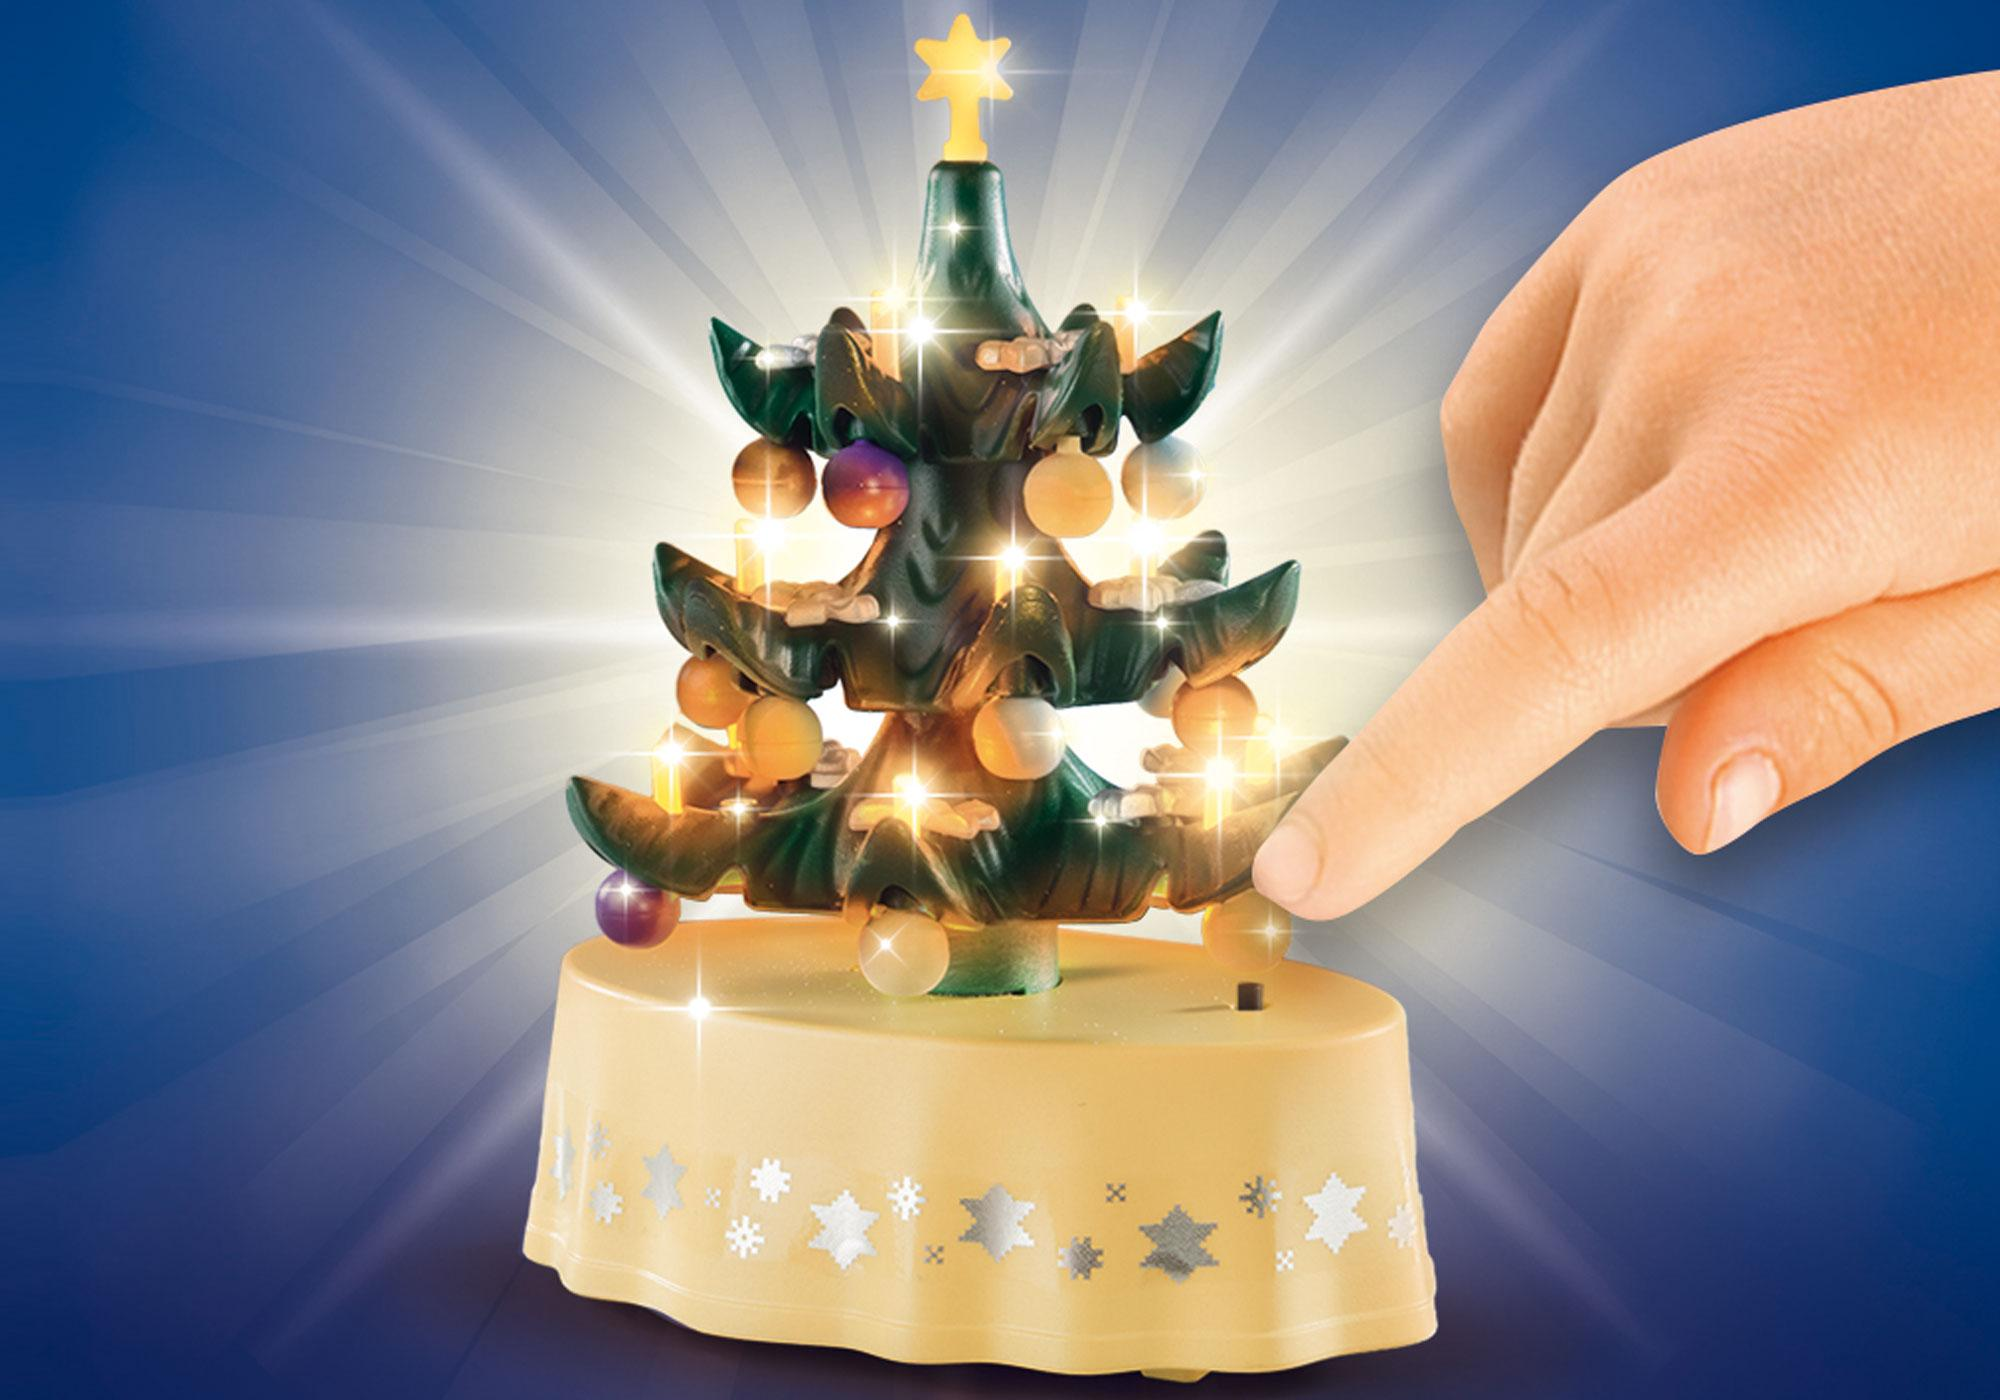 http://media.playmobil.com/i/playmobil/9495_product_extra1/Weihnachtliches Wohnzimmer